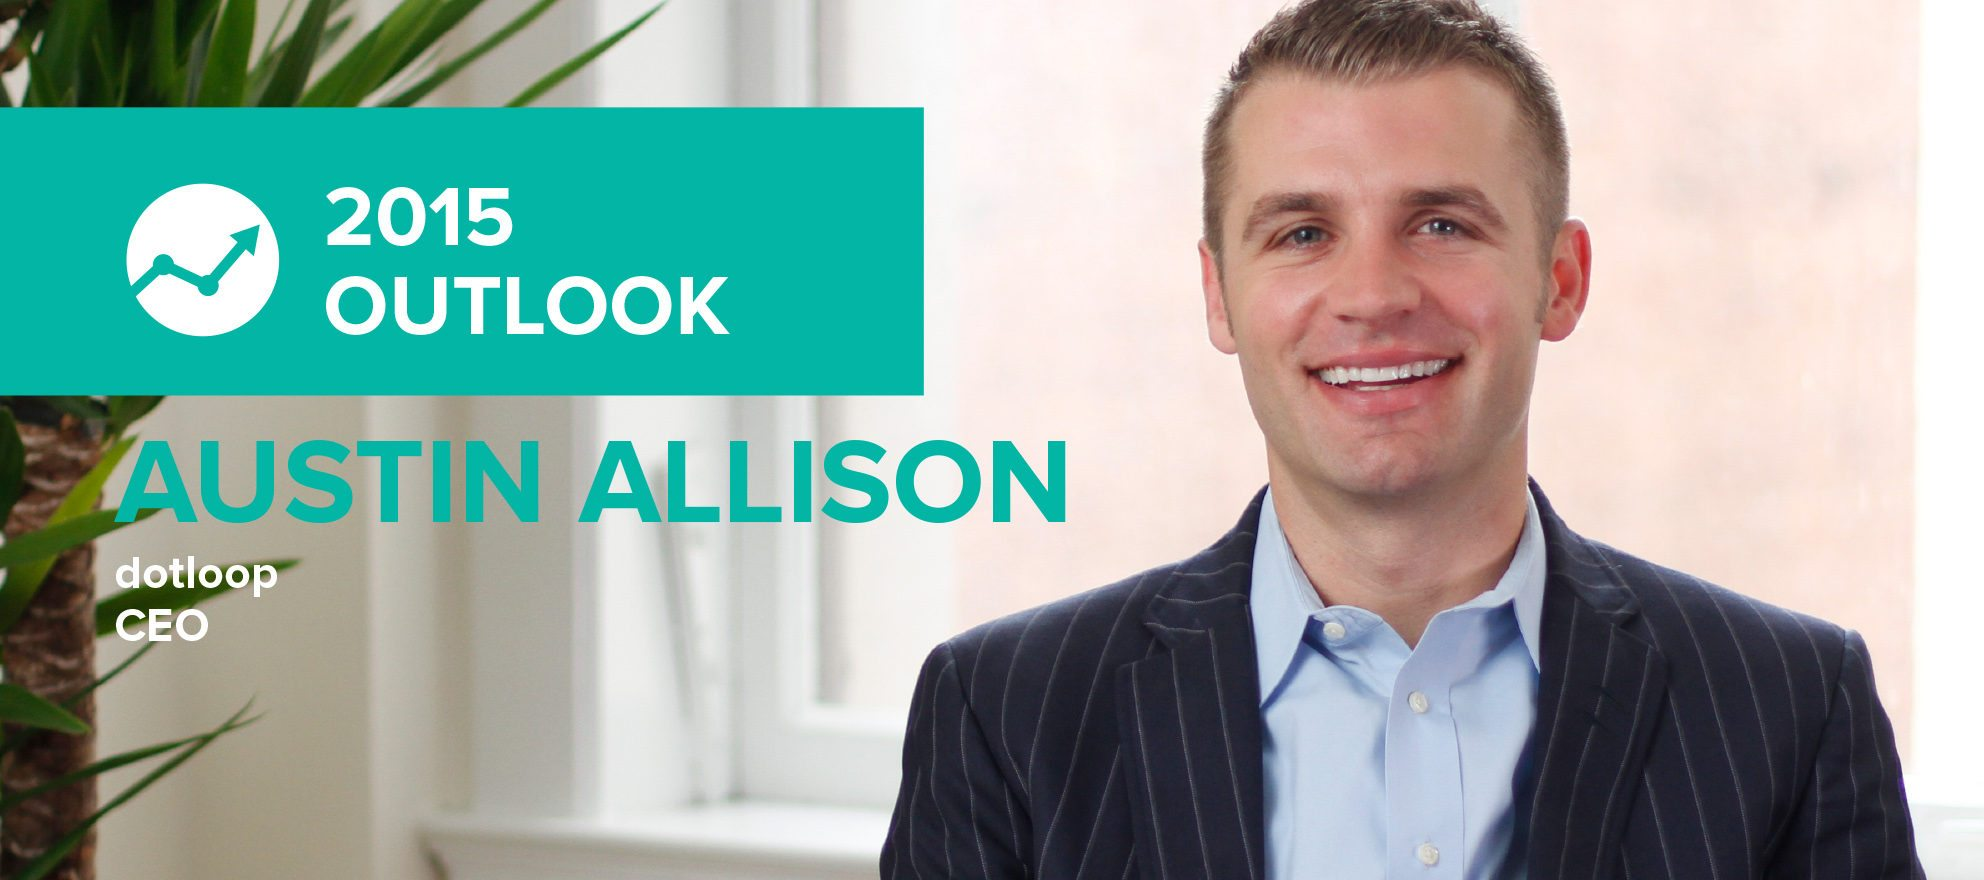 Austin Allison: 'Our focus is on innovation in an industry known to drag its feet'